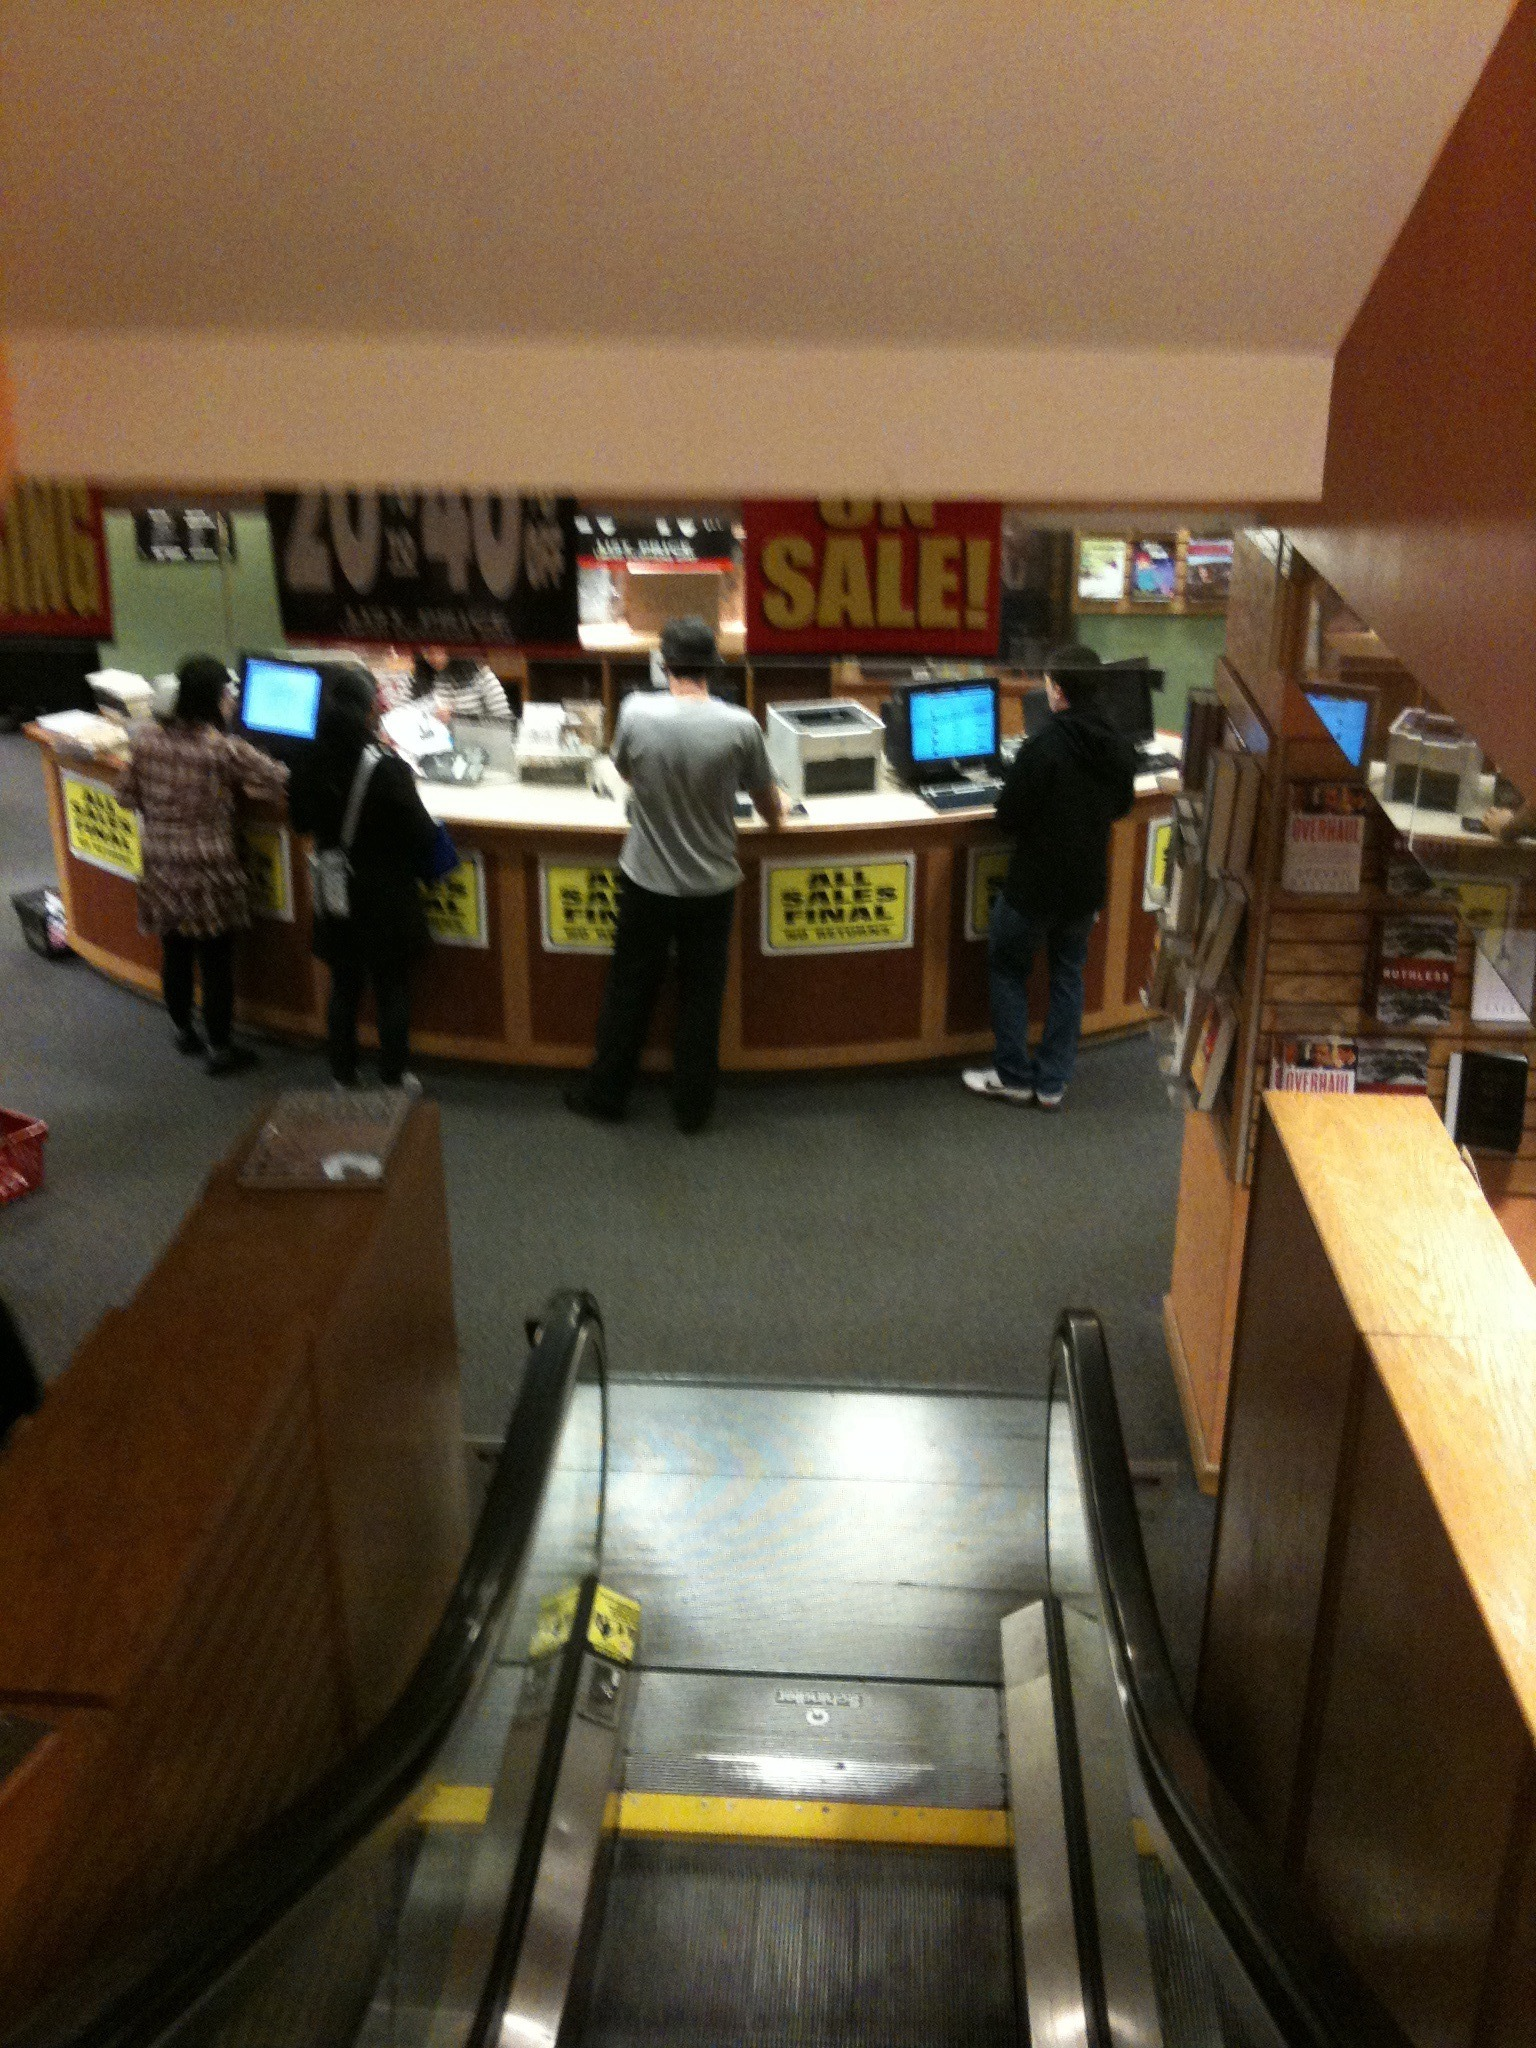 Borders Bankruptcy Sale, Park Avenue